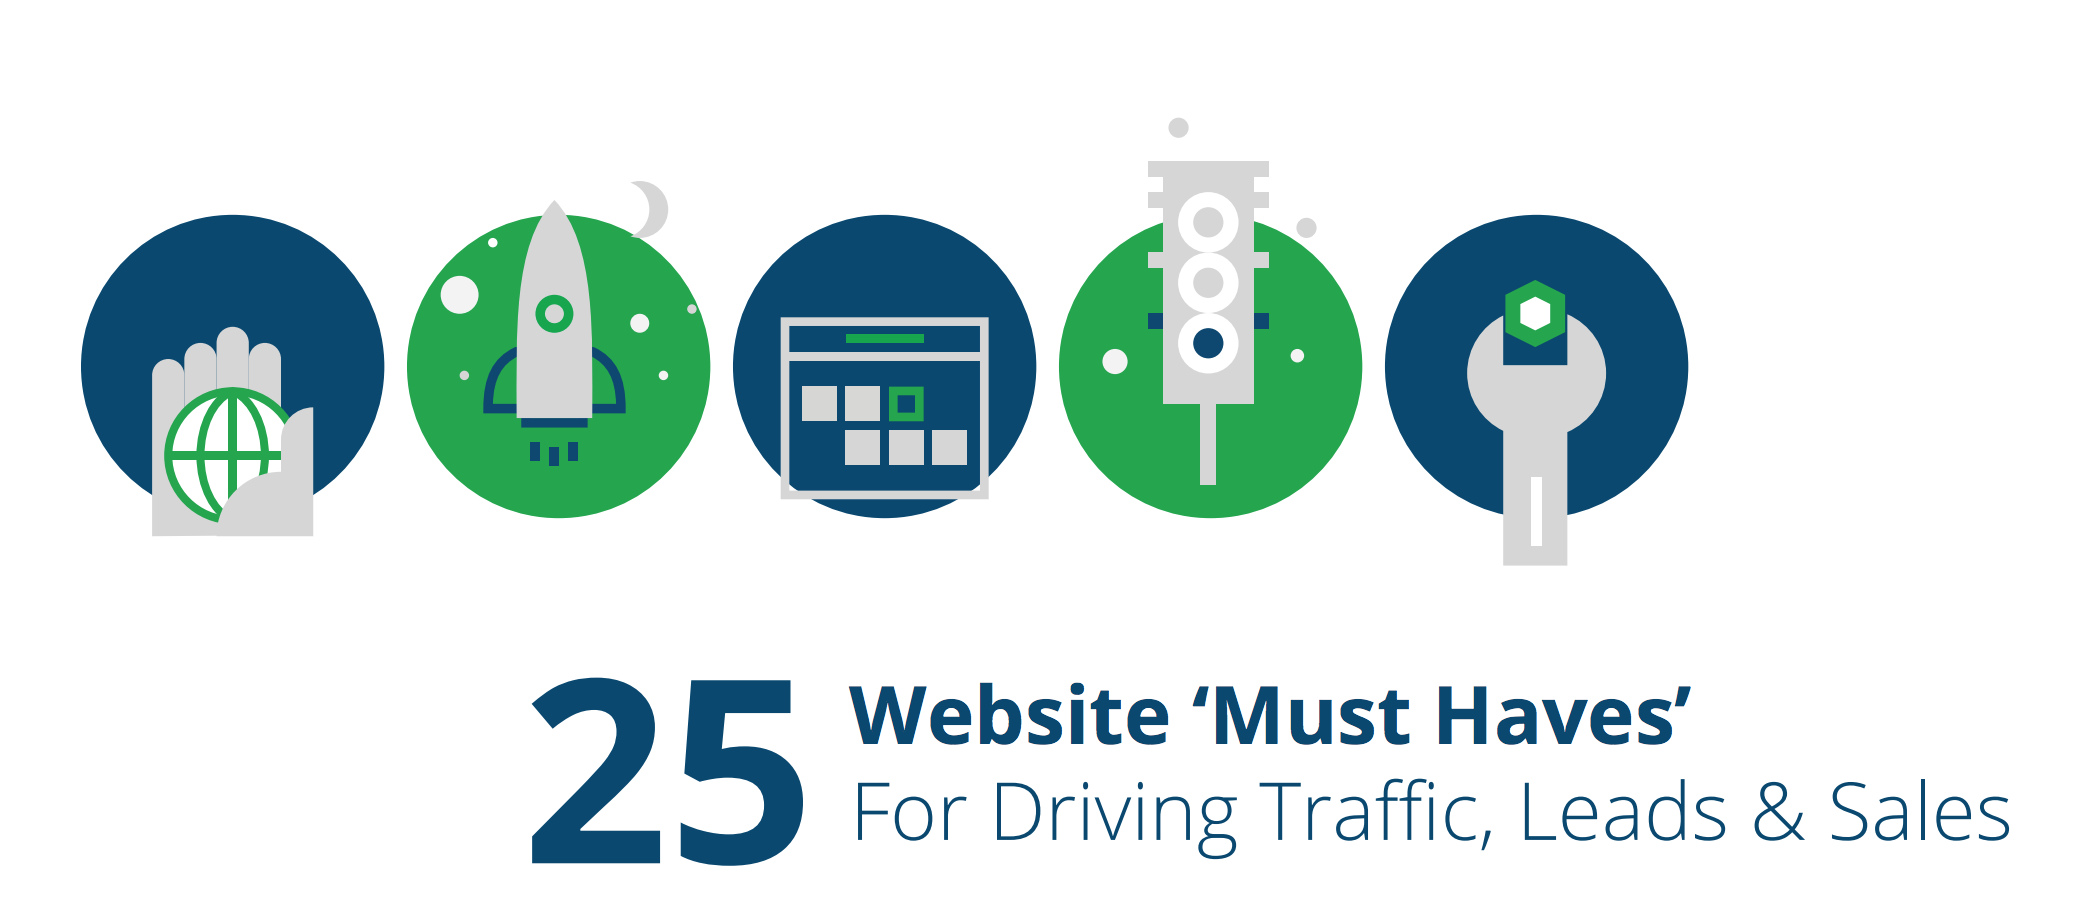 Website 'Must Haves' For Driving Traffic, Leads & Conversions